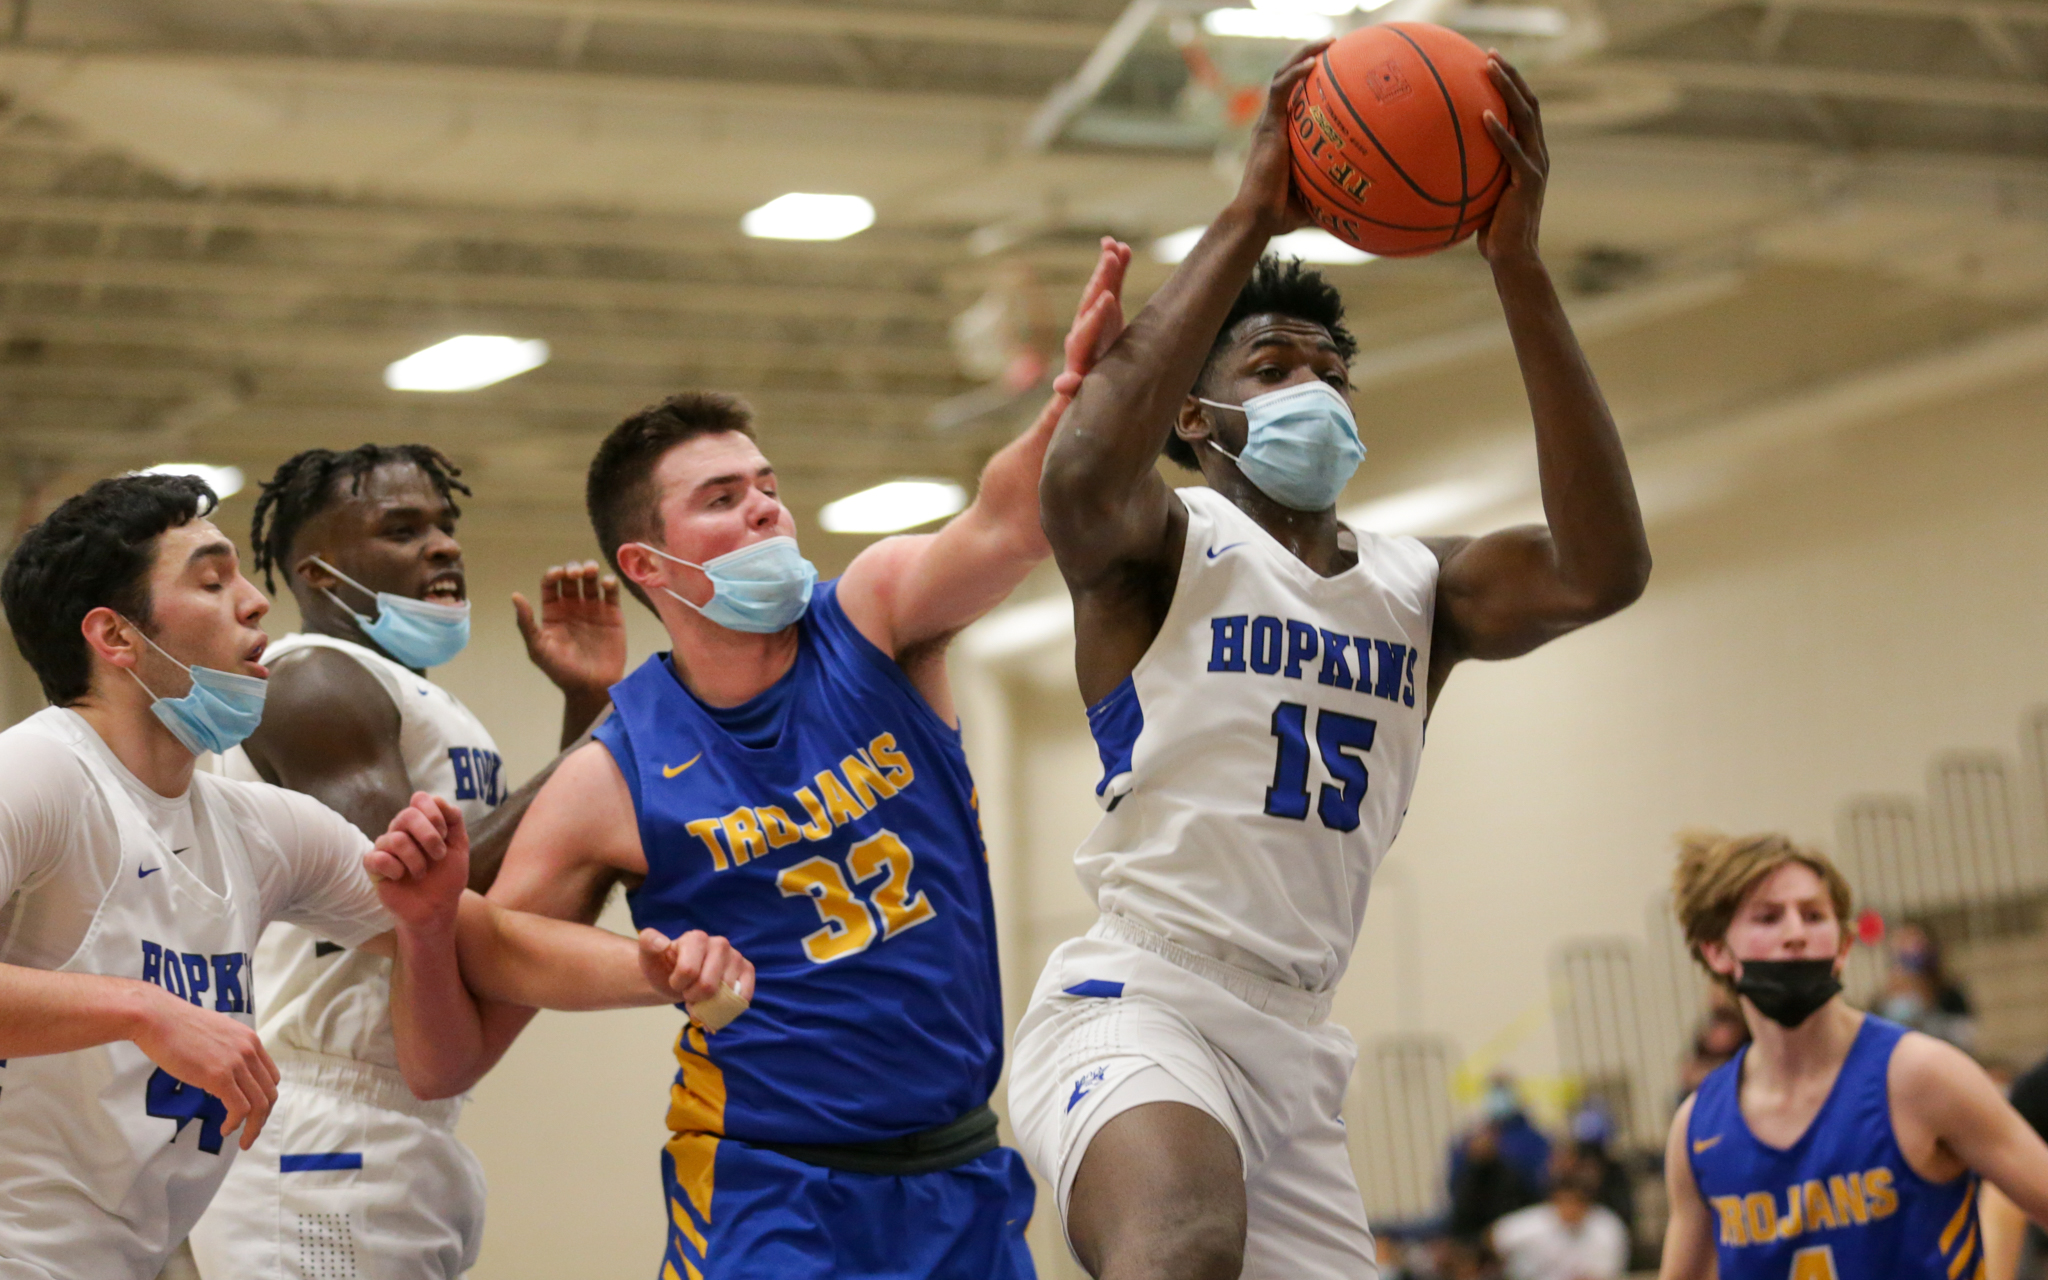 Hopkins' Elvis Nnaji (15) pulls down a rebound against Wayzata in Friday night's Lake Conference game. Nnaji had 13 points in the Royals' 68-60 loss to the Trojans. Photo by Jeff Lawler, SportsEngine